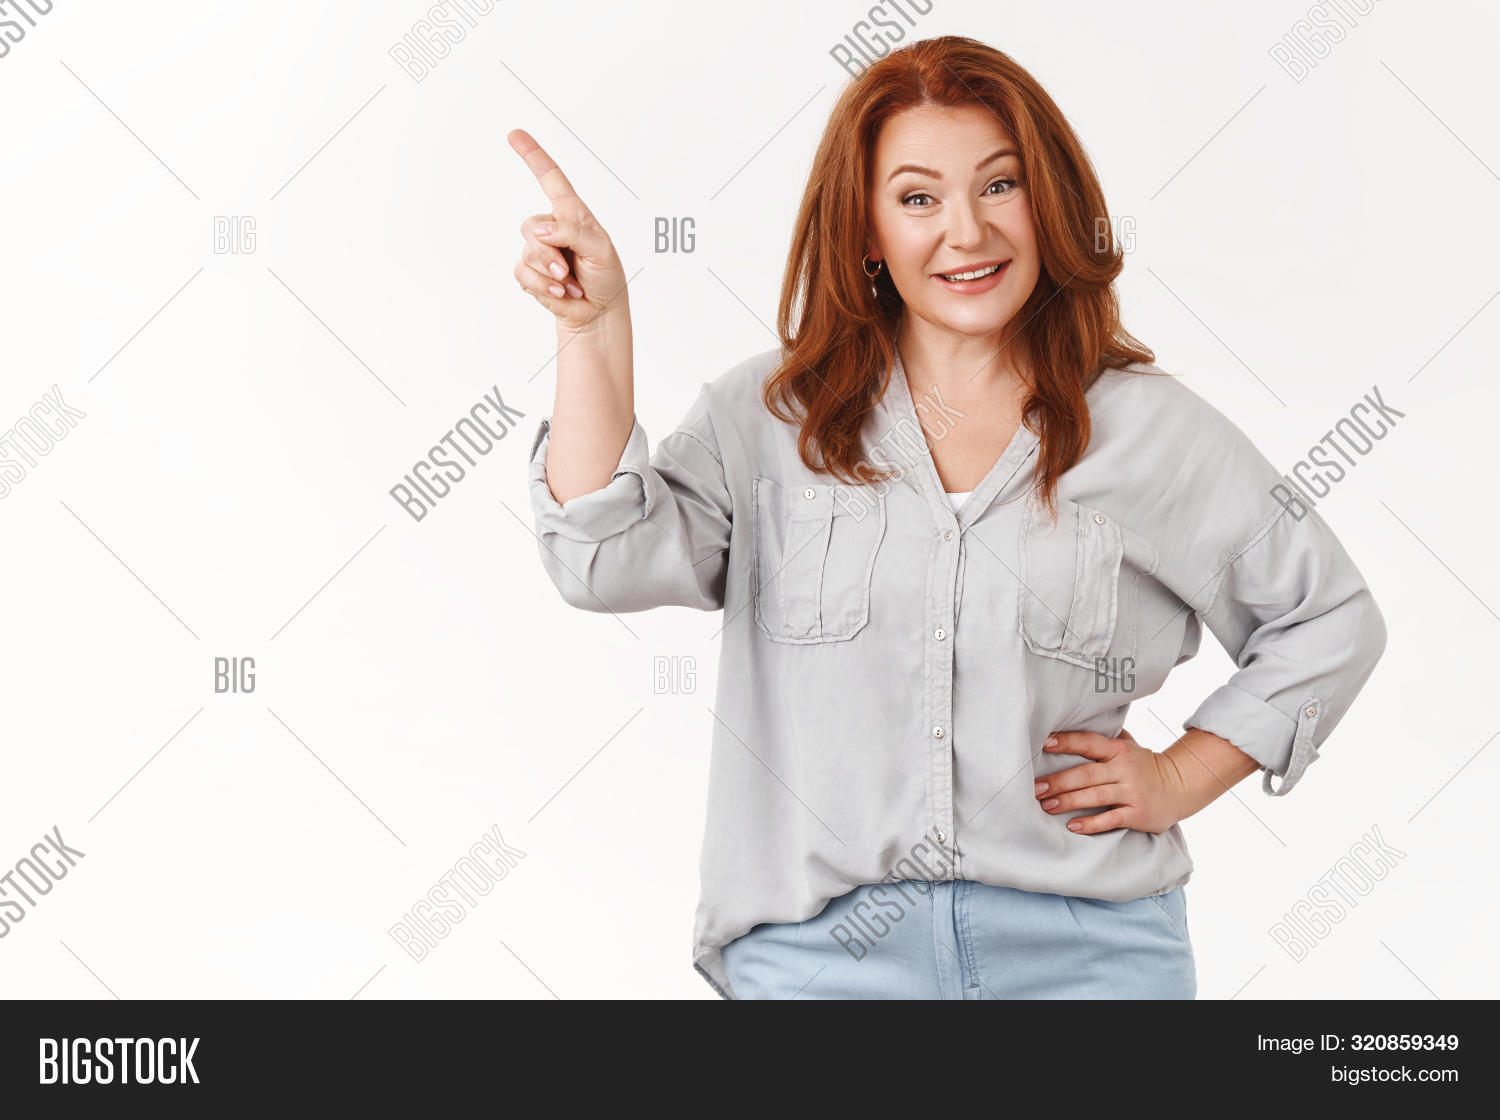 adult,advertisement,age,aged,attractive,beautiful,beauty,businesswoman,carefree,casual,caucasian,cheerful,elegant,emotions,entrepreneur,expression,family,female,foxy,ginger,gorgeous,granny,haircut,hairstyle,happiness,happy,left,lifestyle,mature,middle-aged,modern,mom,mother,parent,pleasant,pointing,portrait,pretty,promo,red,redhead,relaxed,skincare,smile,stylish,wellbeing,white,wife,woman,wrinkles